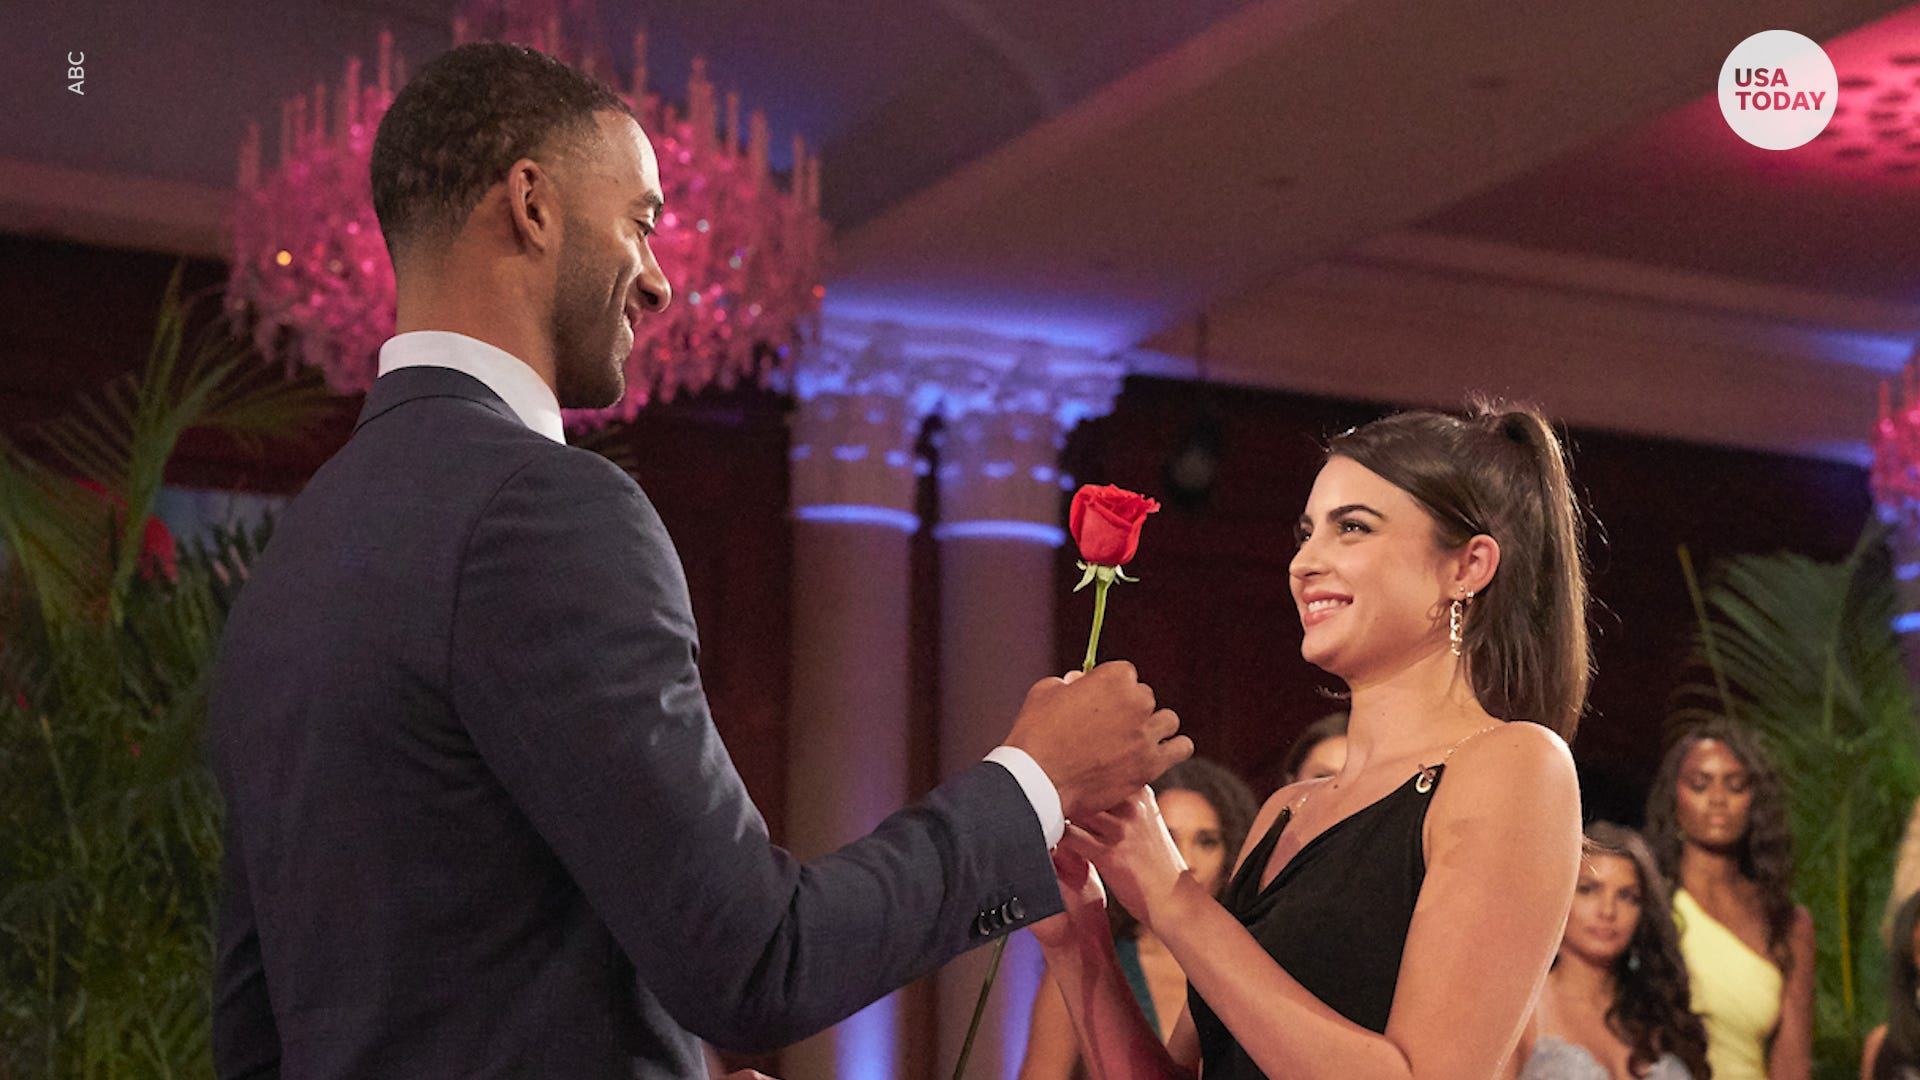 """Week 7 of """"The Bachelor"""" was hard to watch without thinking of the racism controversy with front-runner Rachael Kirkconnell and host Chris Harrison."""